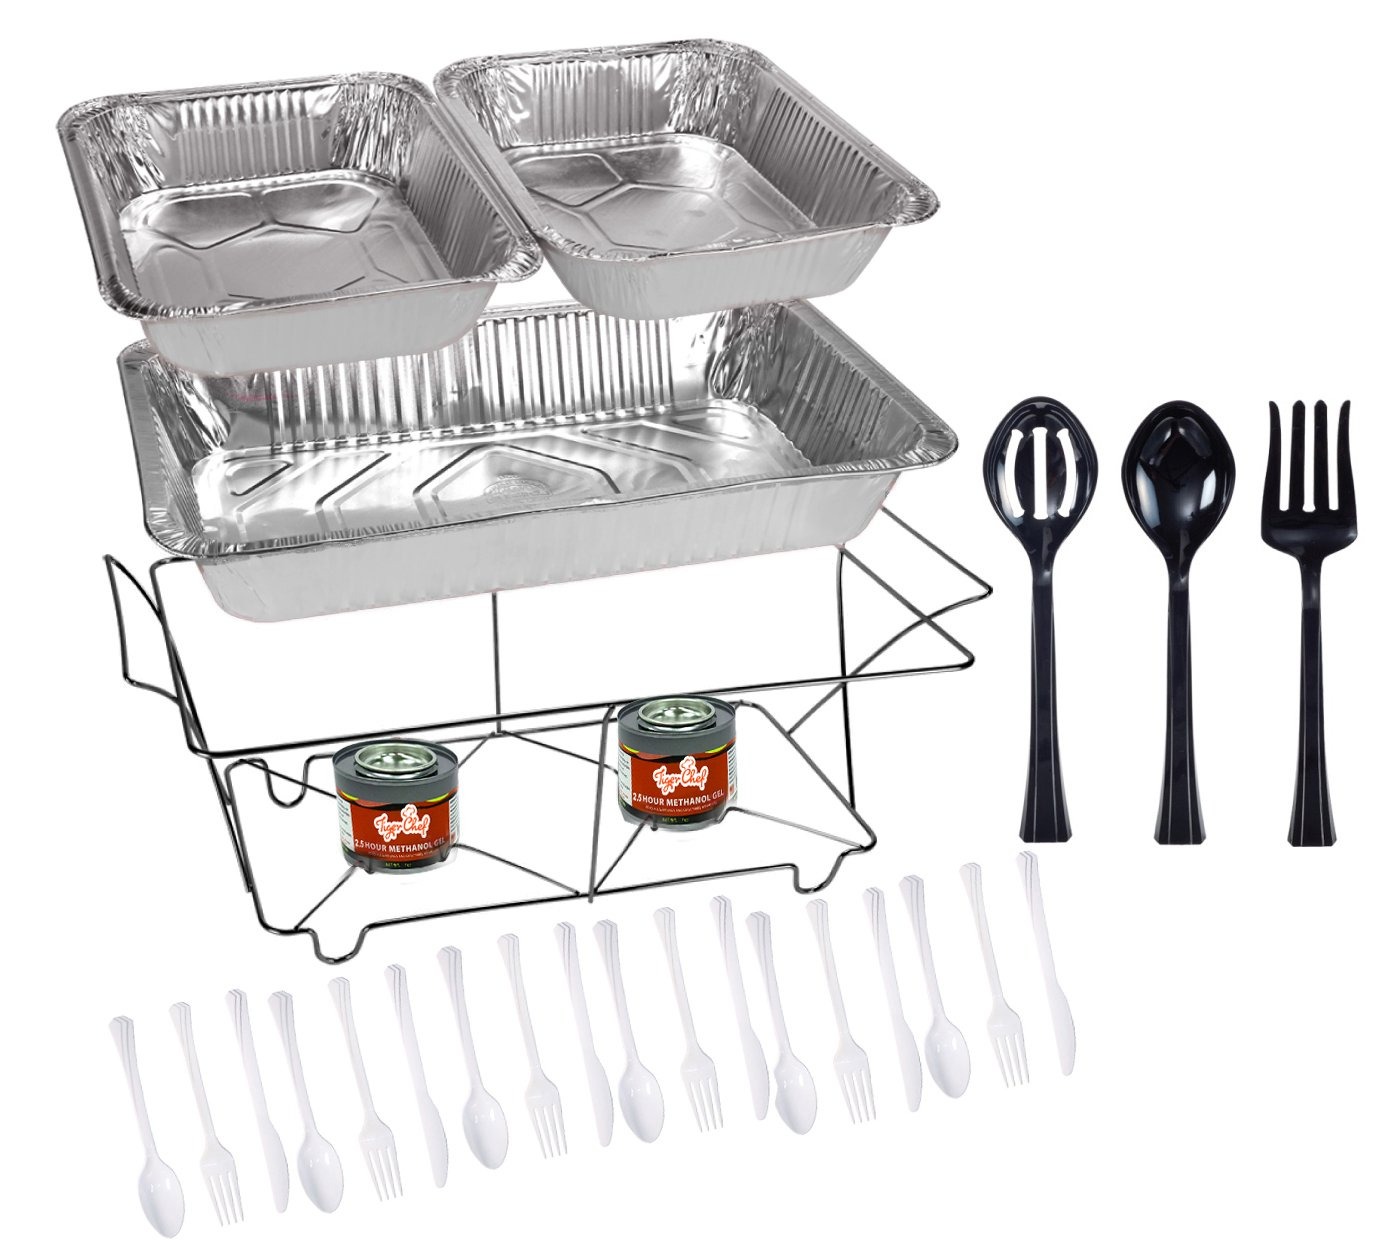 Tiger Chef 33-Piece Black Food Warmer Chafing Dish Buffet Set, Disposable Chafing Dishes with Colorful Baking Pans, Fuel Gel, Serving Utensils and Plastic Cutlery chafing dish rack